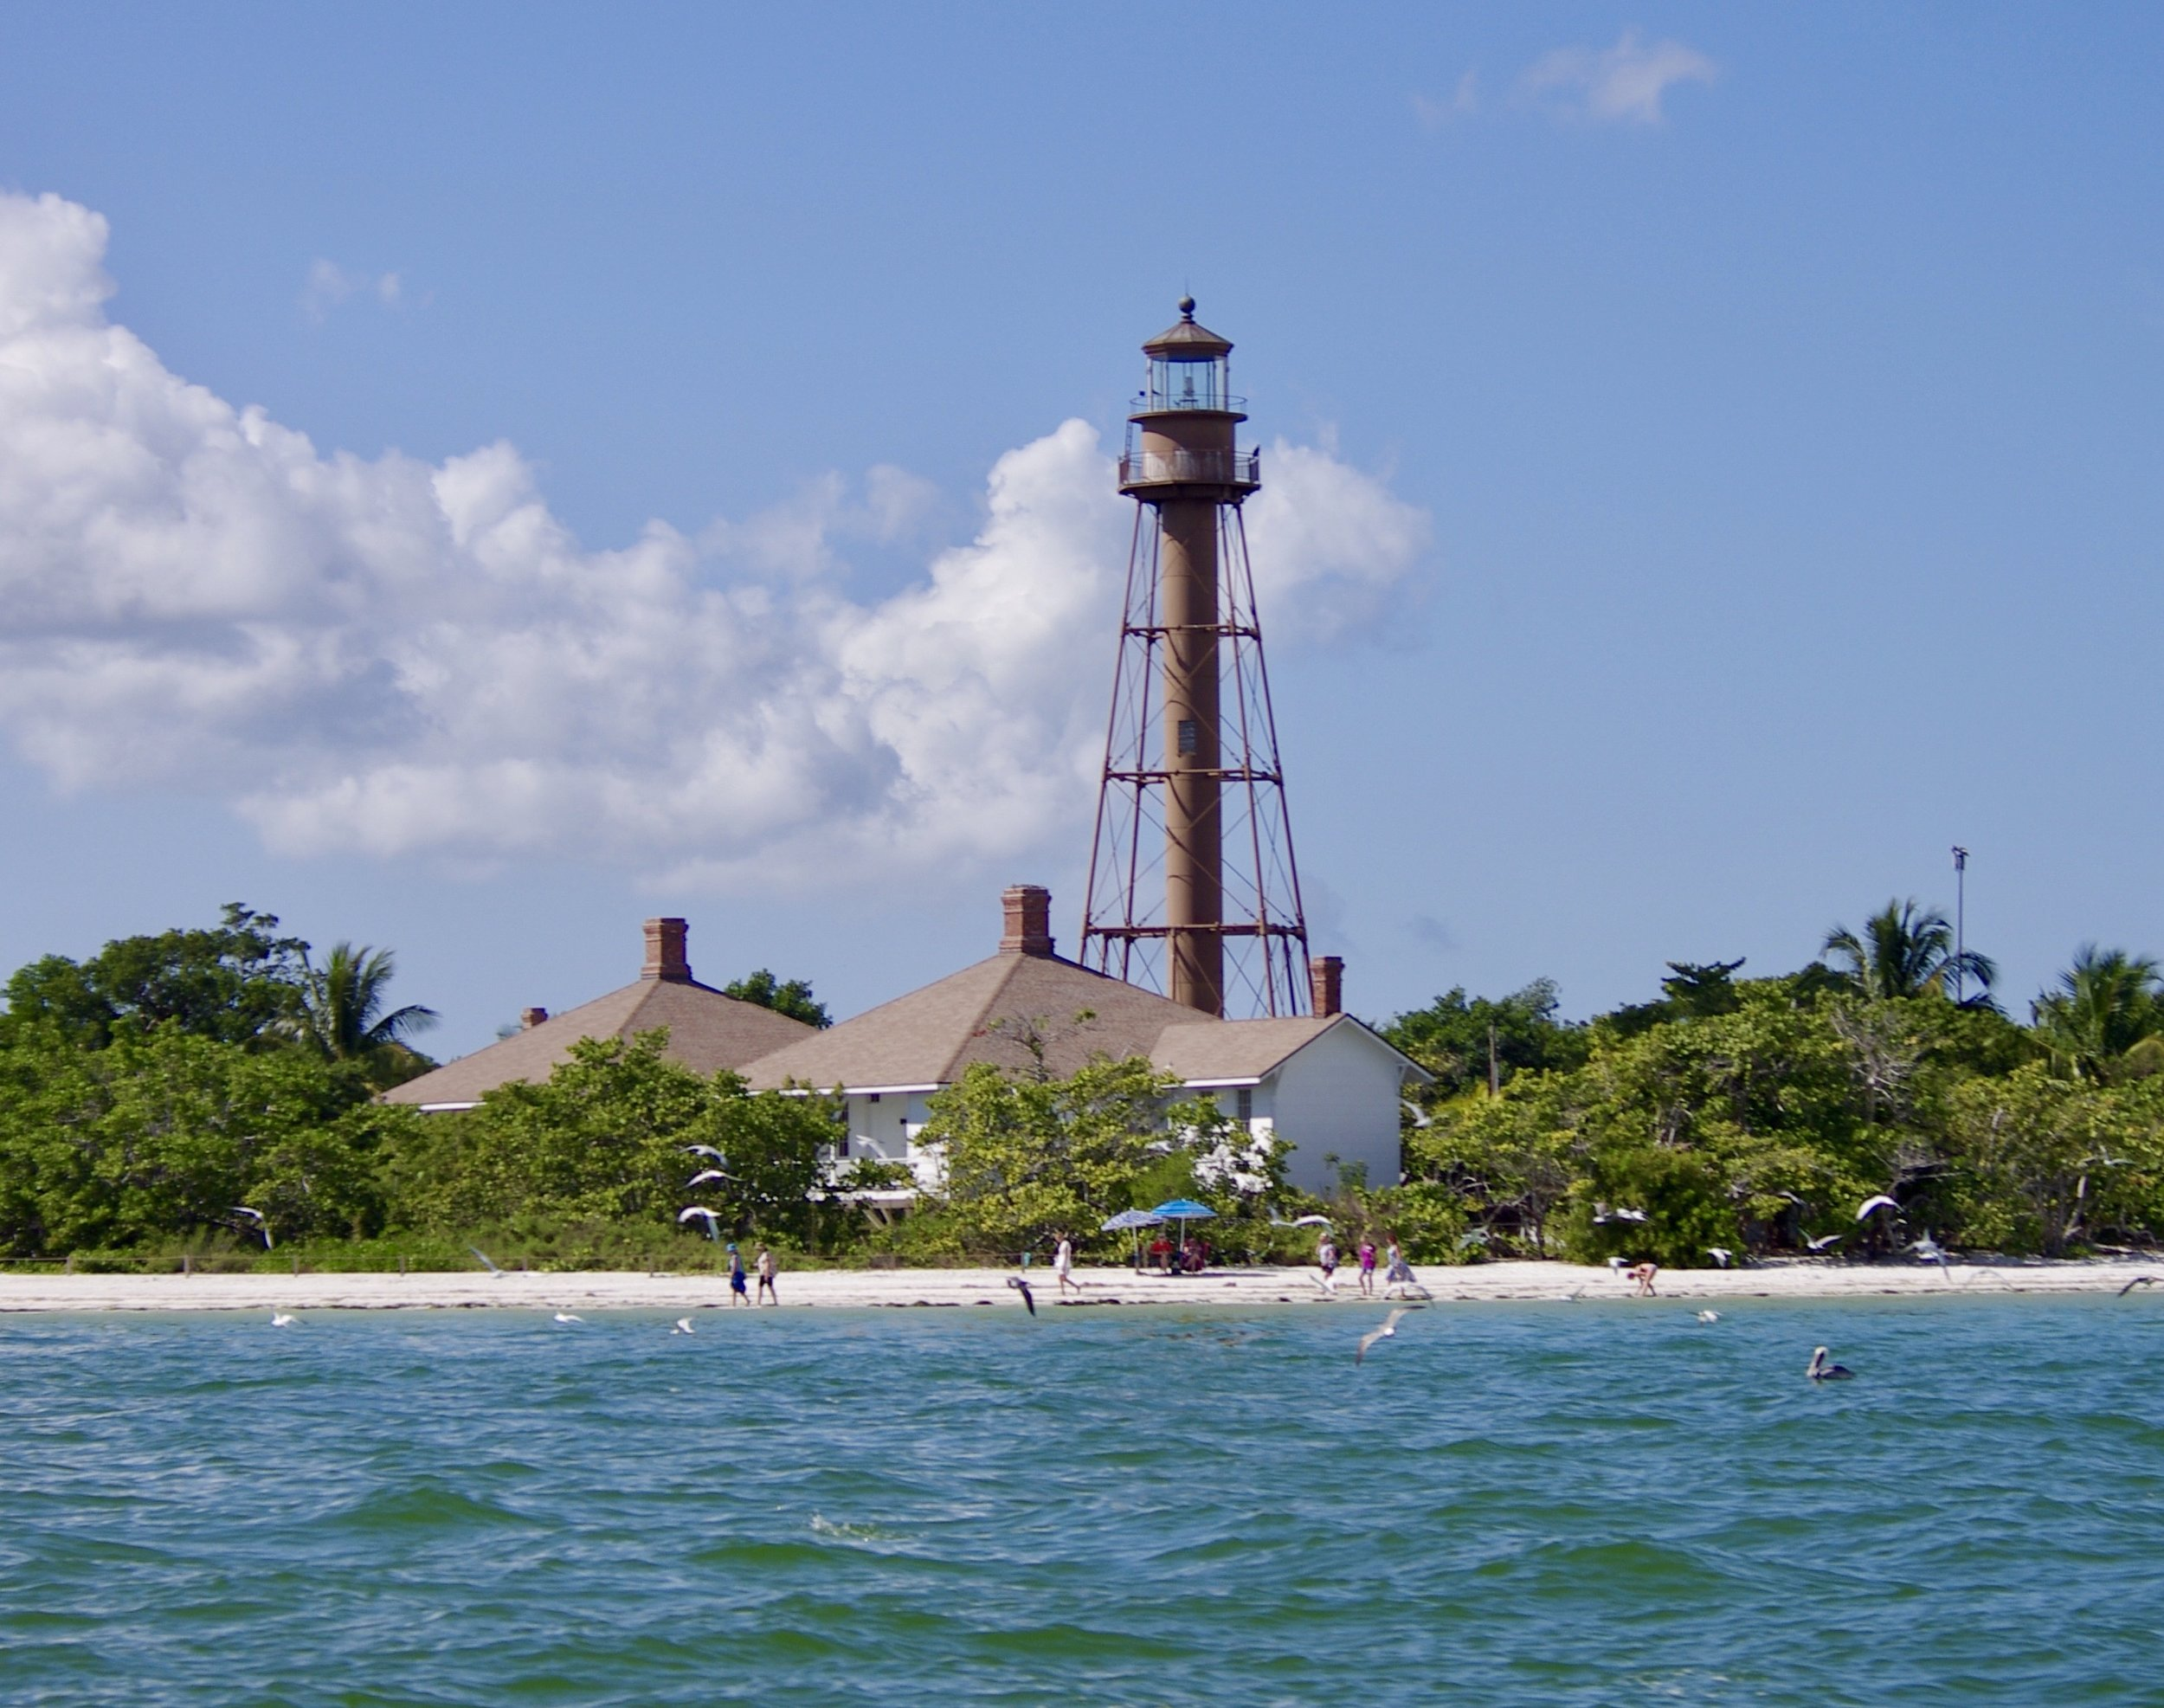 THE HISTORIC SANIBEL LIGHTHOUSE